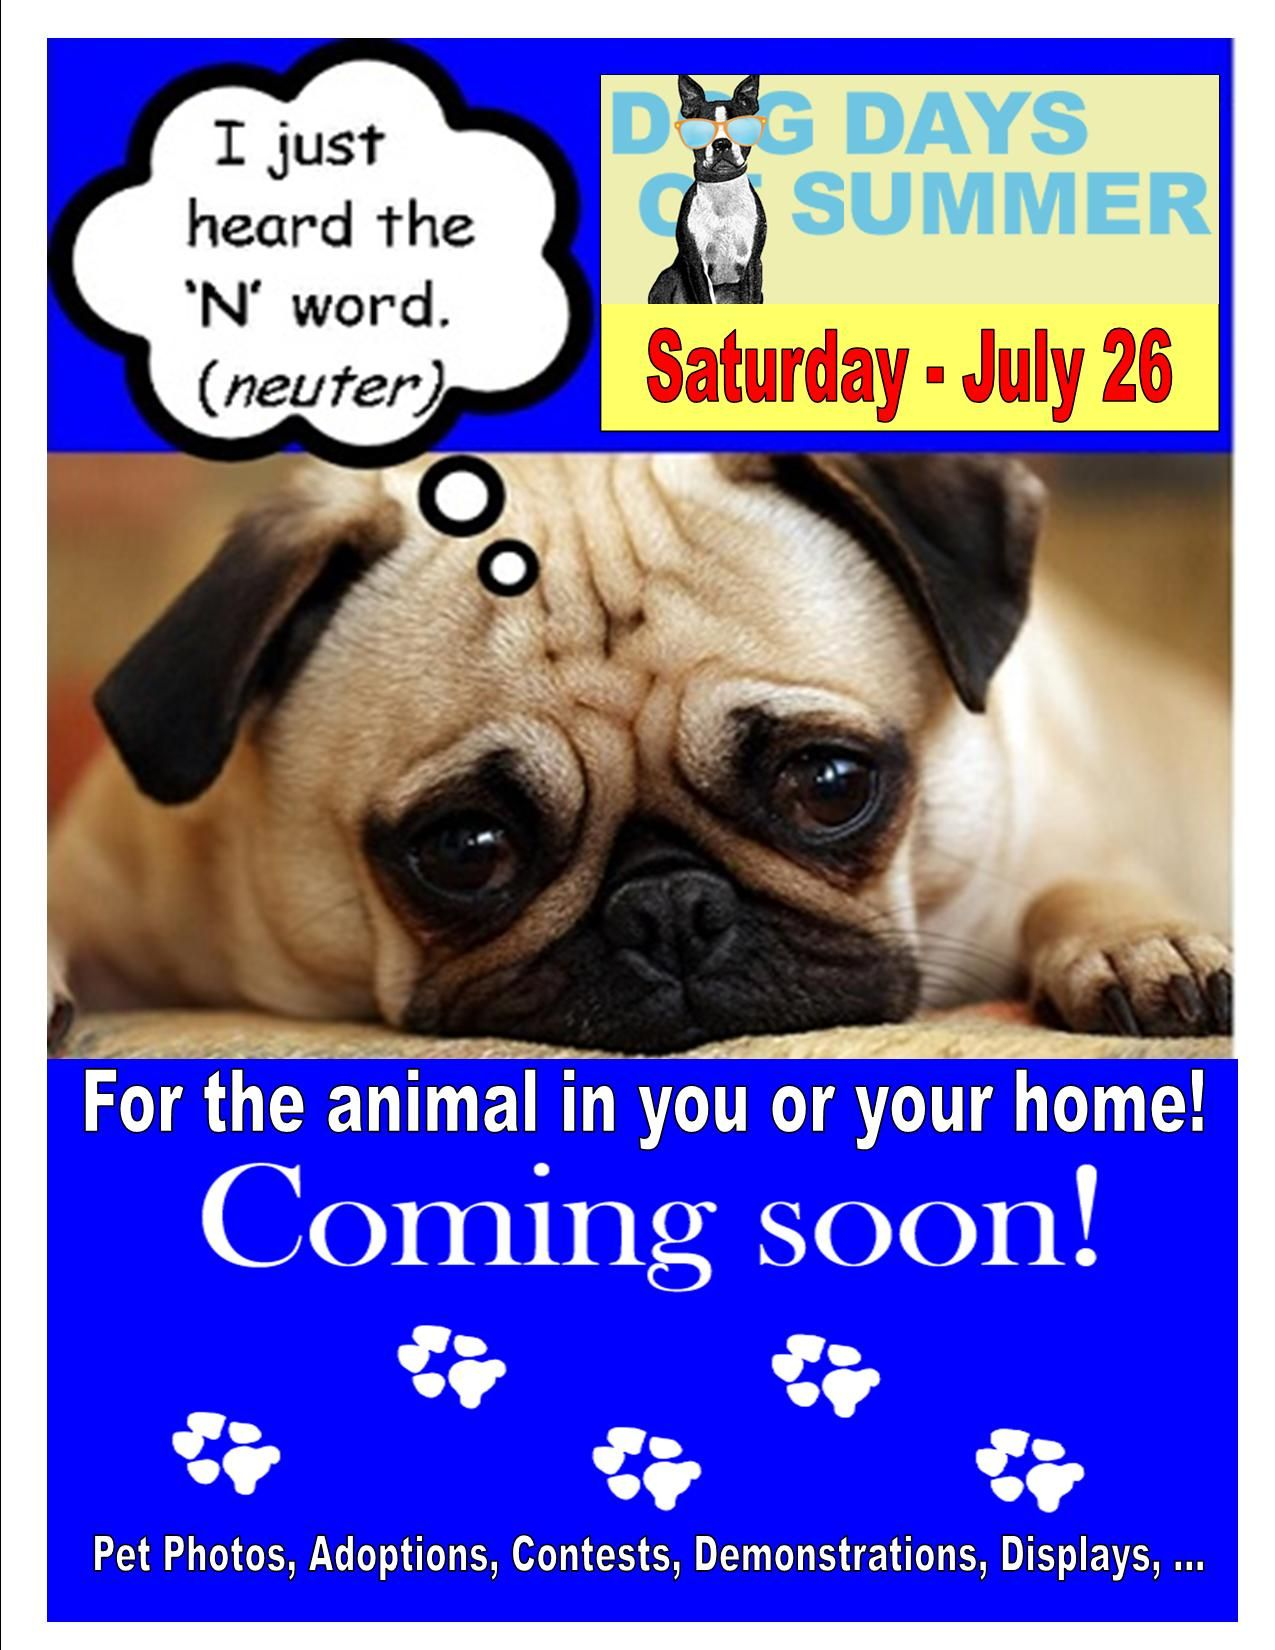 Plan To Attend The Cedar Mall S Dog Days Of Summer Pet Celebration July 26th Pets Fun Events Dog Days